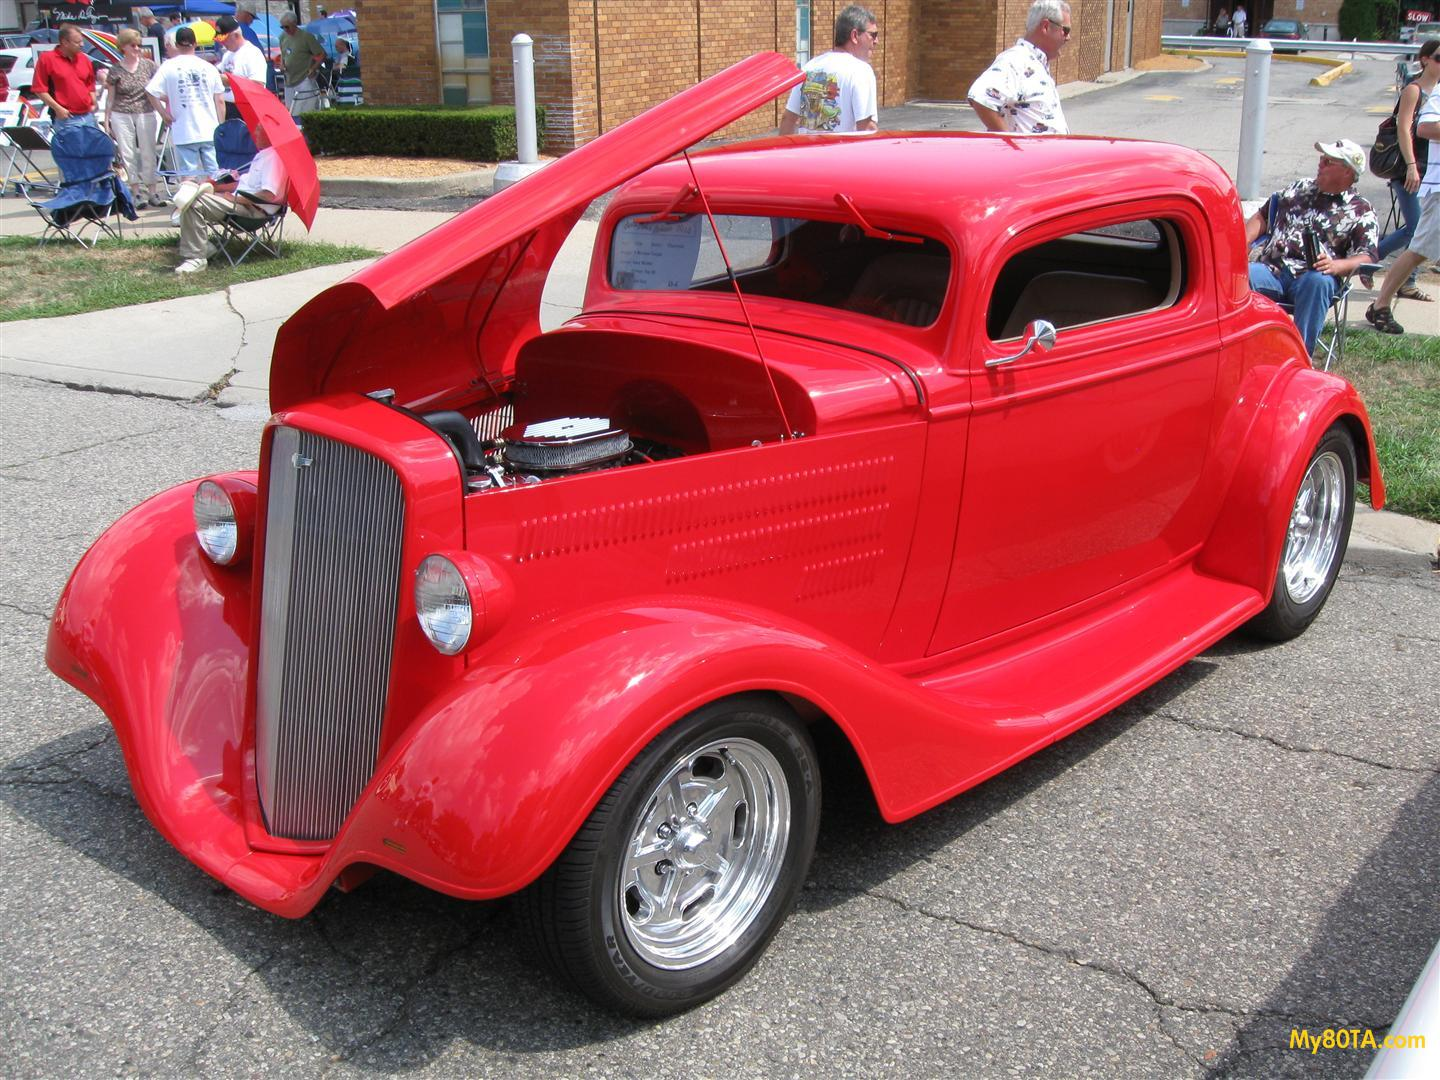 Rockin' Rods 2010 Photo